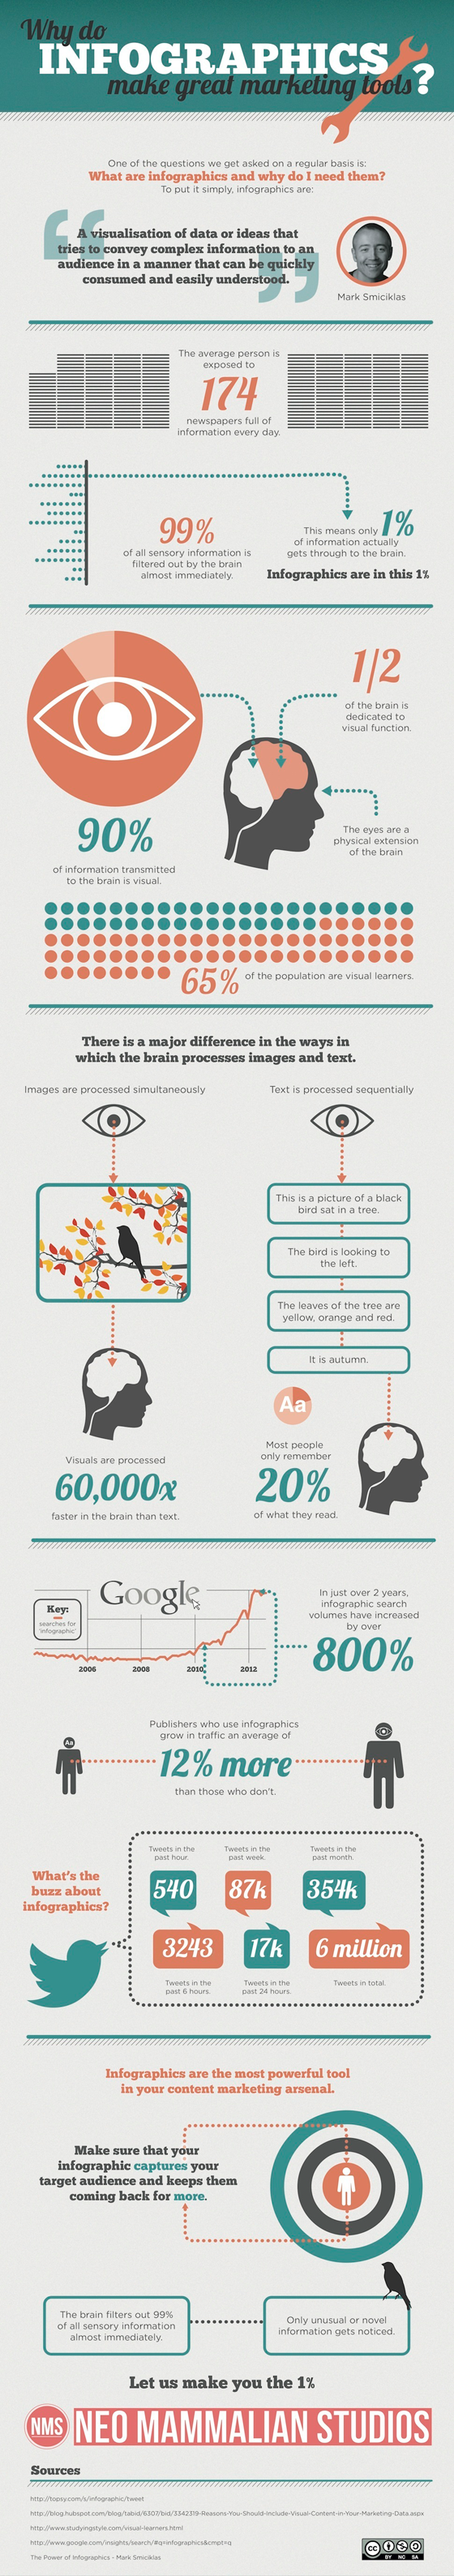 Ubounce: Why Do Infographics Make Great Marketing Tools?